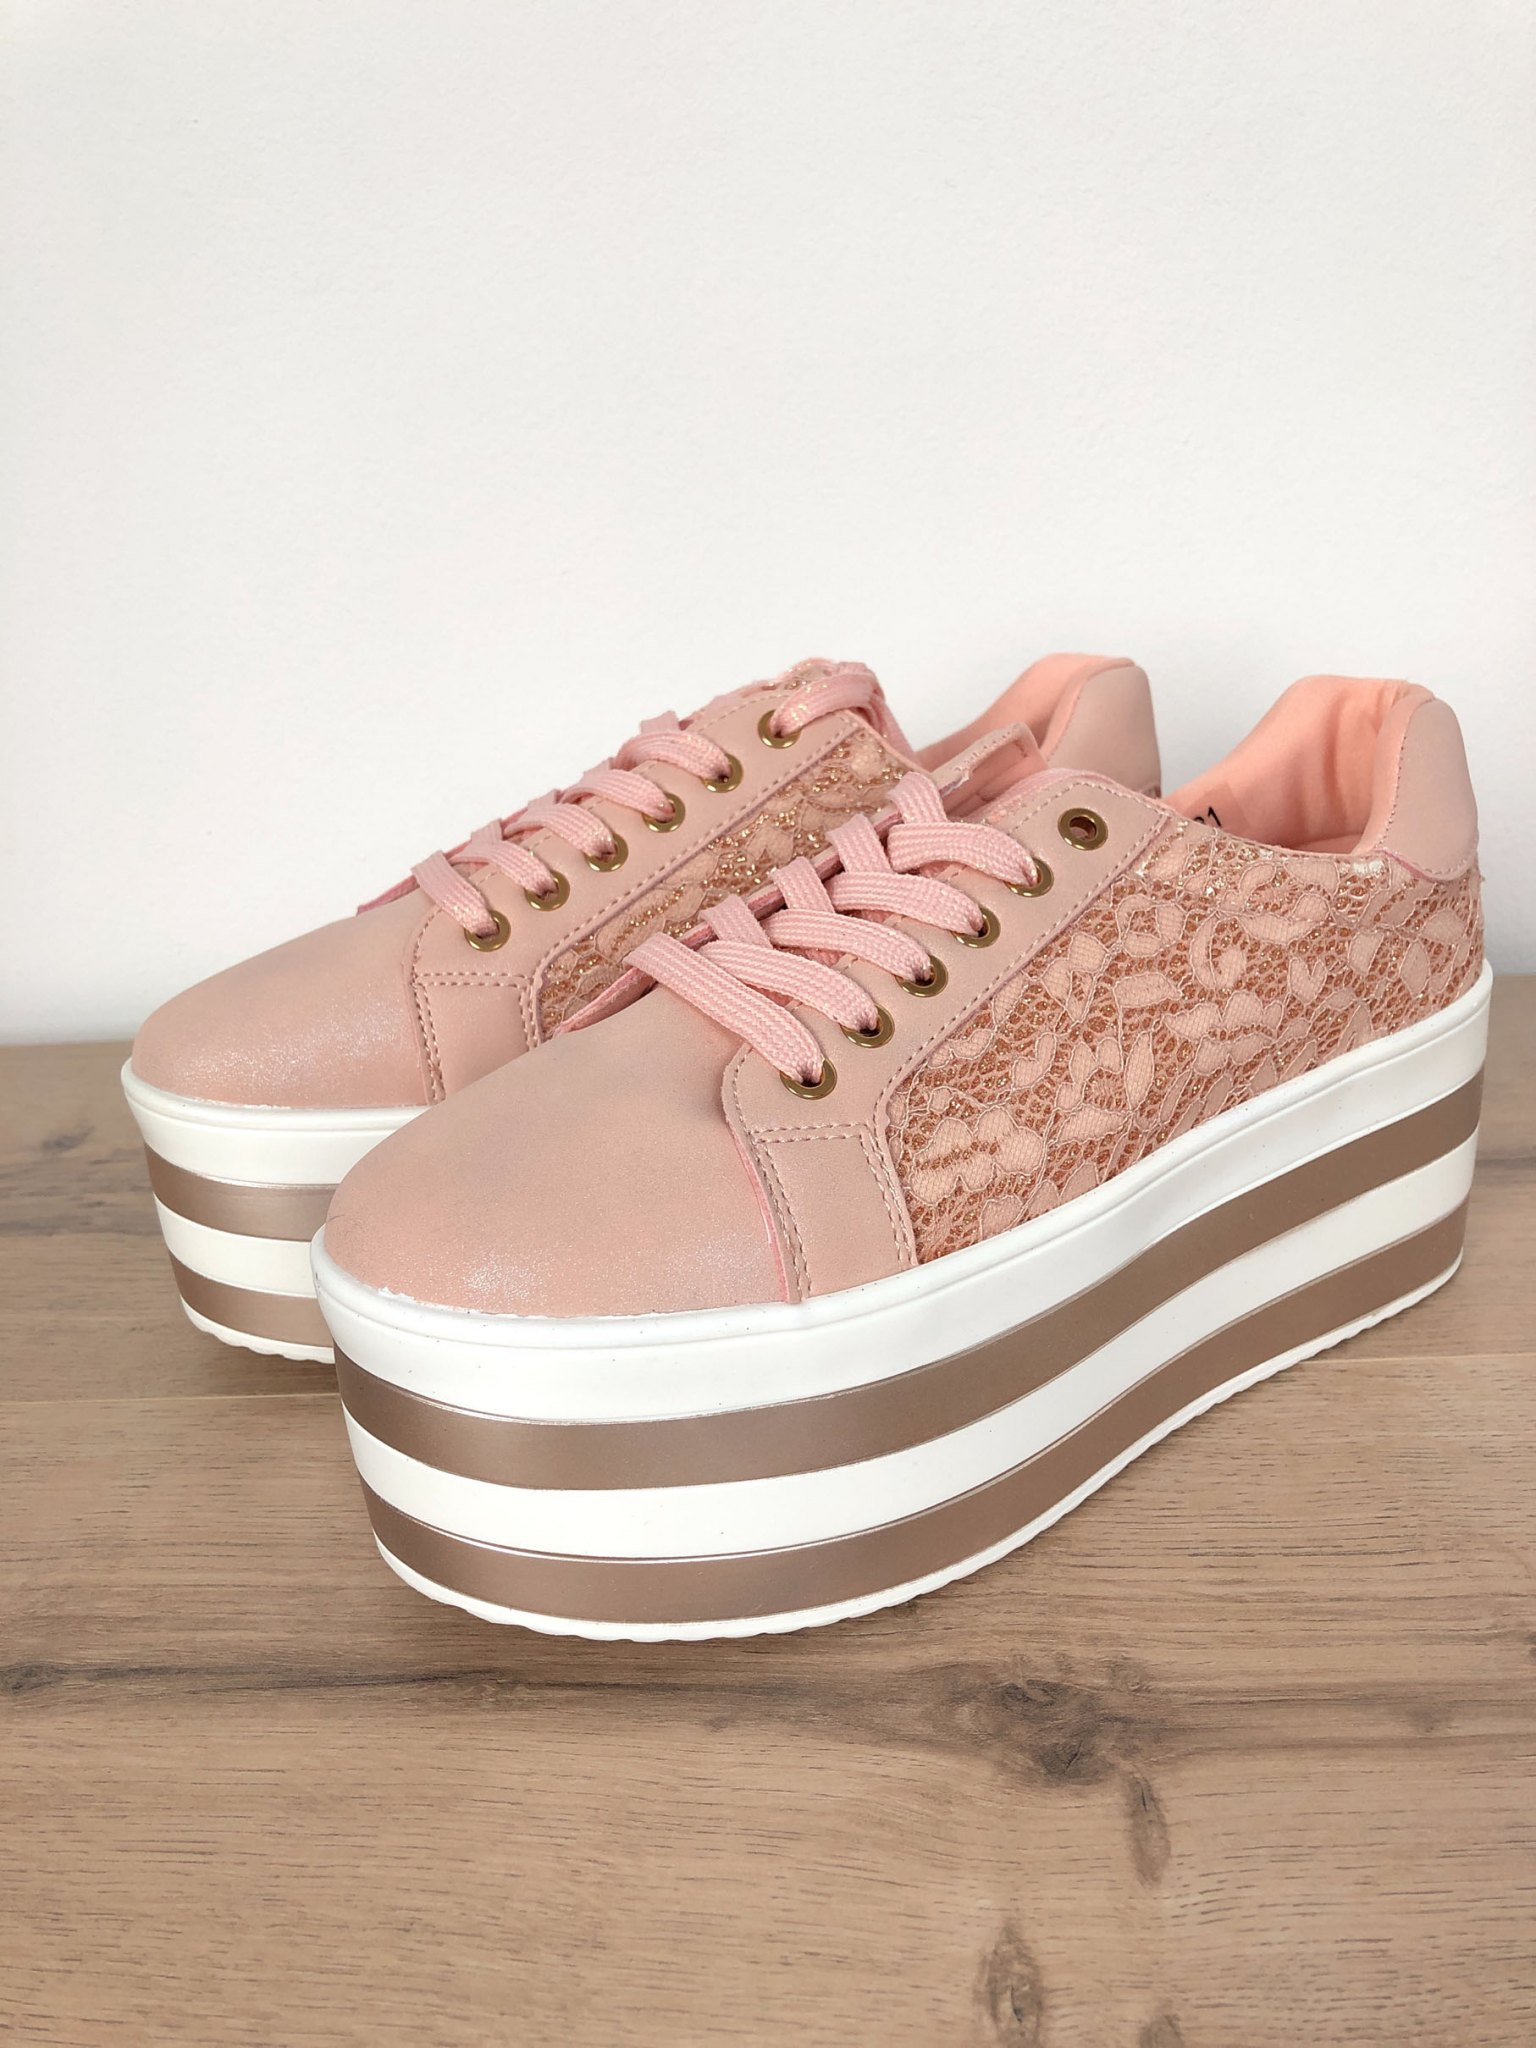 new products ef304 2ff5f Plateau-Sneaker mit Spitze rosa